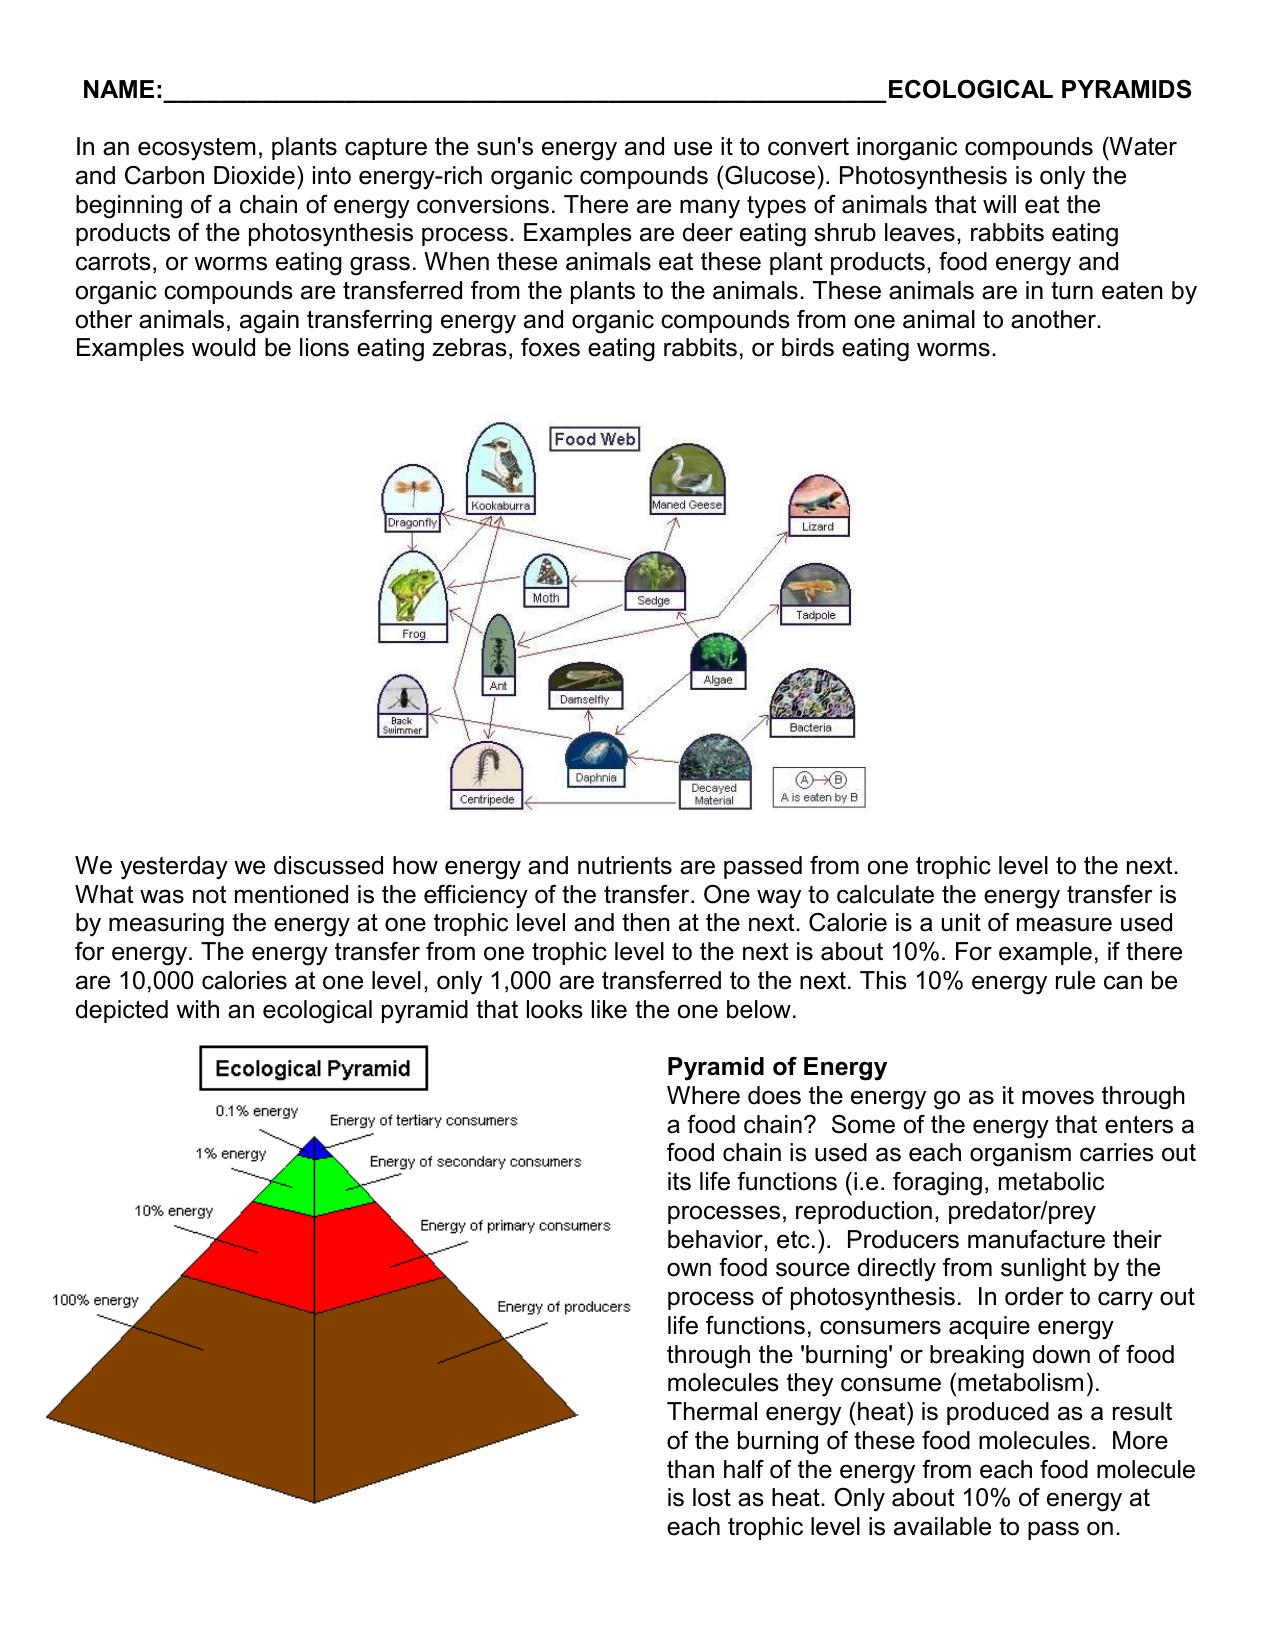 worksheet Ecological Pyramids Worksheet Answers food chains webs and ecological pyramids 1275x1651 png classroom pinterest pyramid food